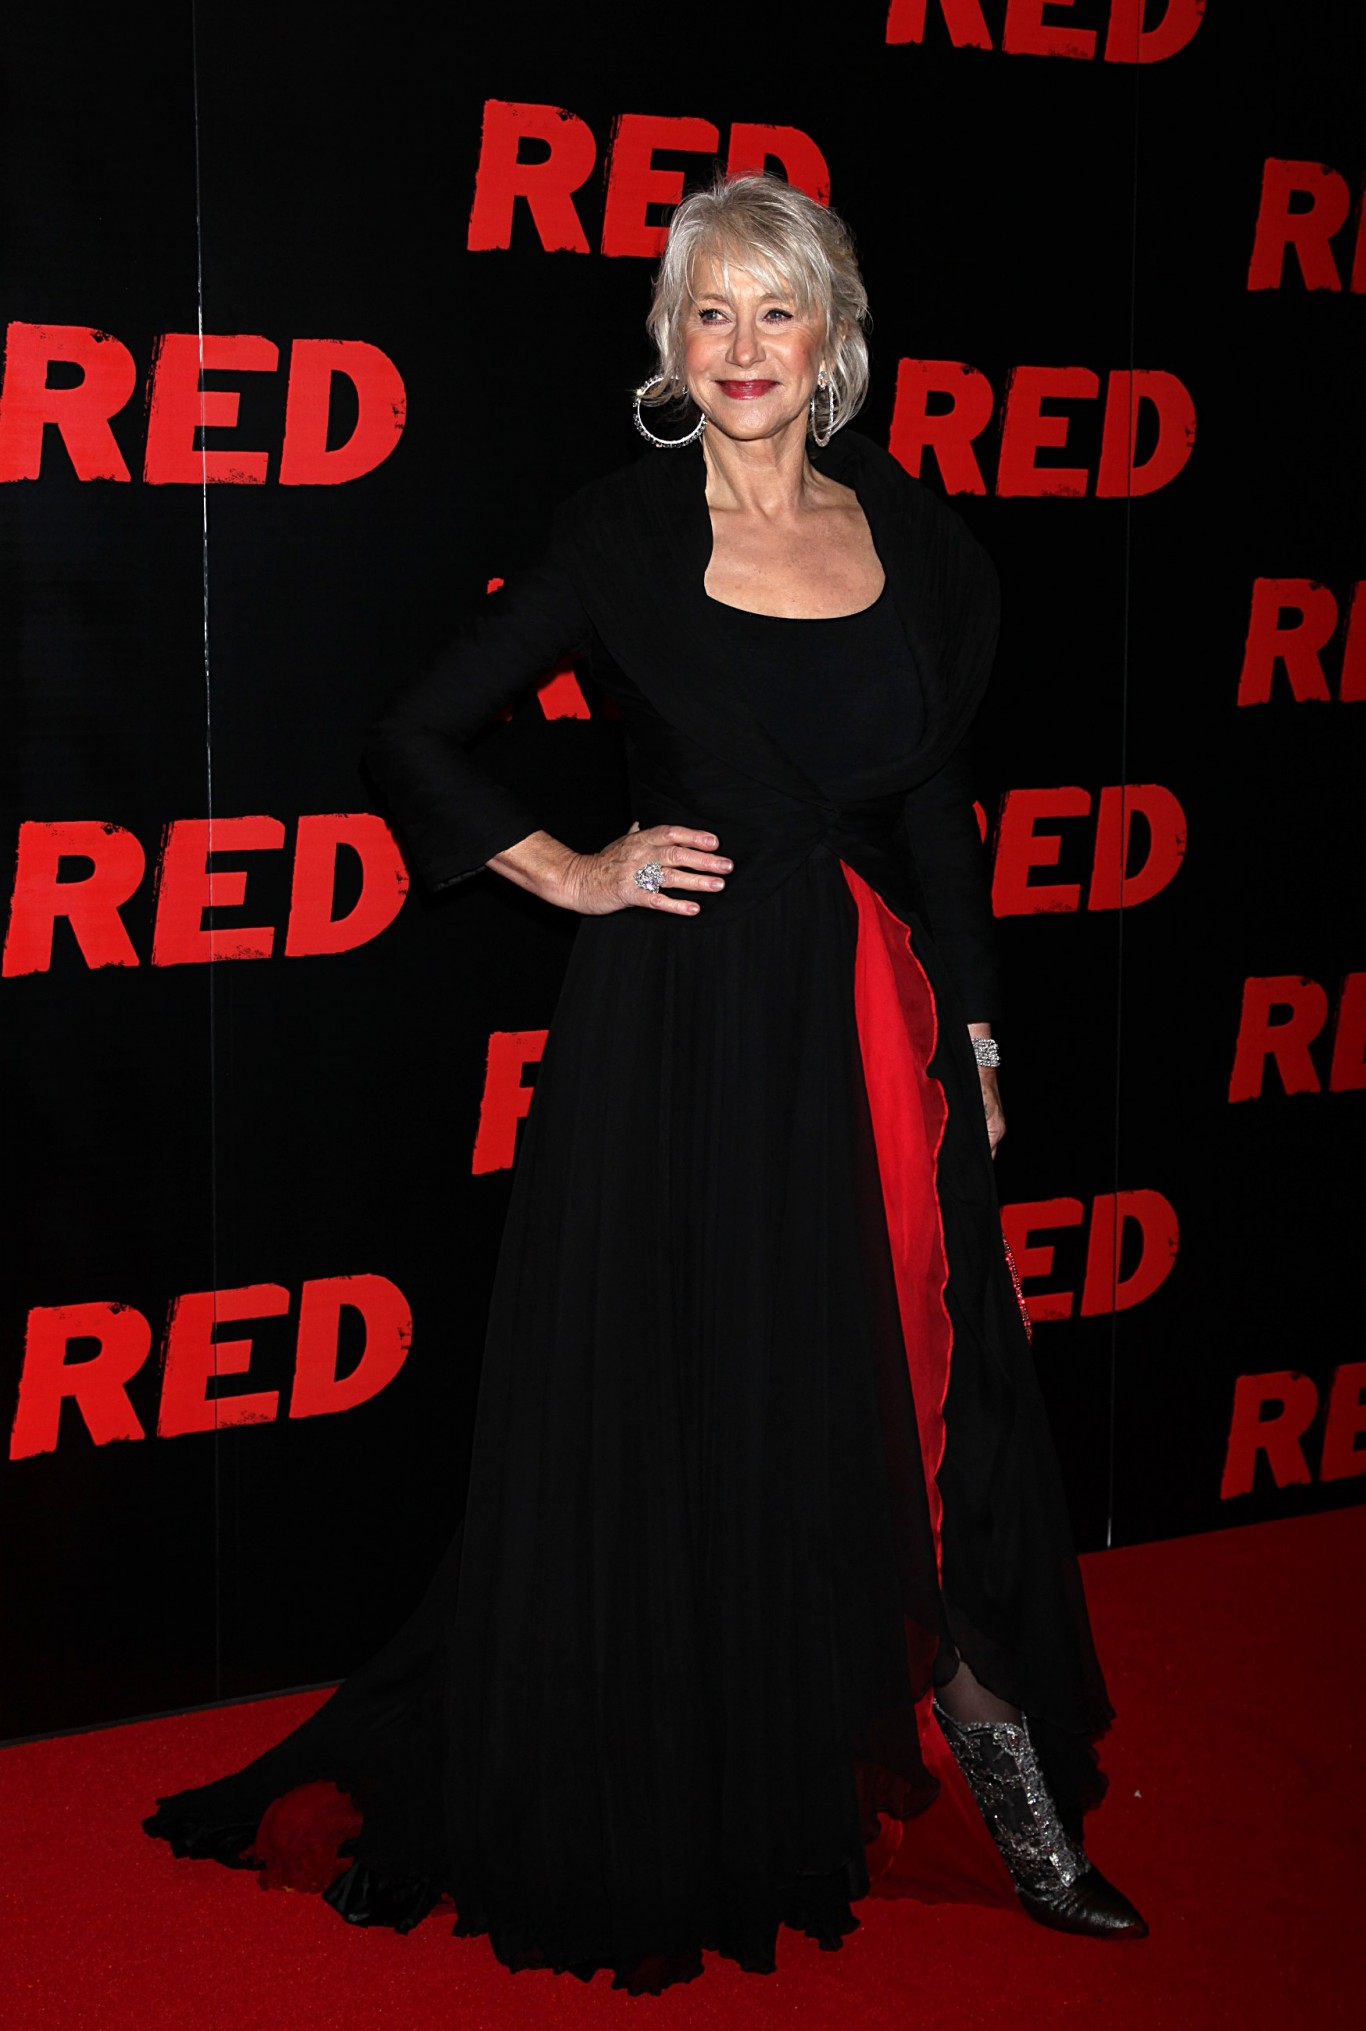 Helen Mirren strikes a pose a the premiere if Red in 2010